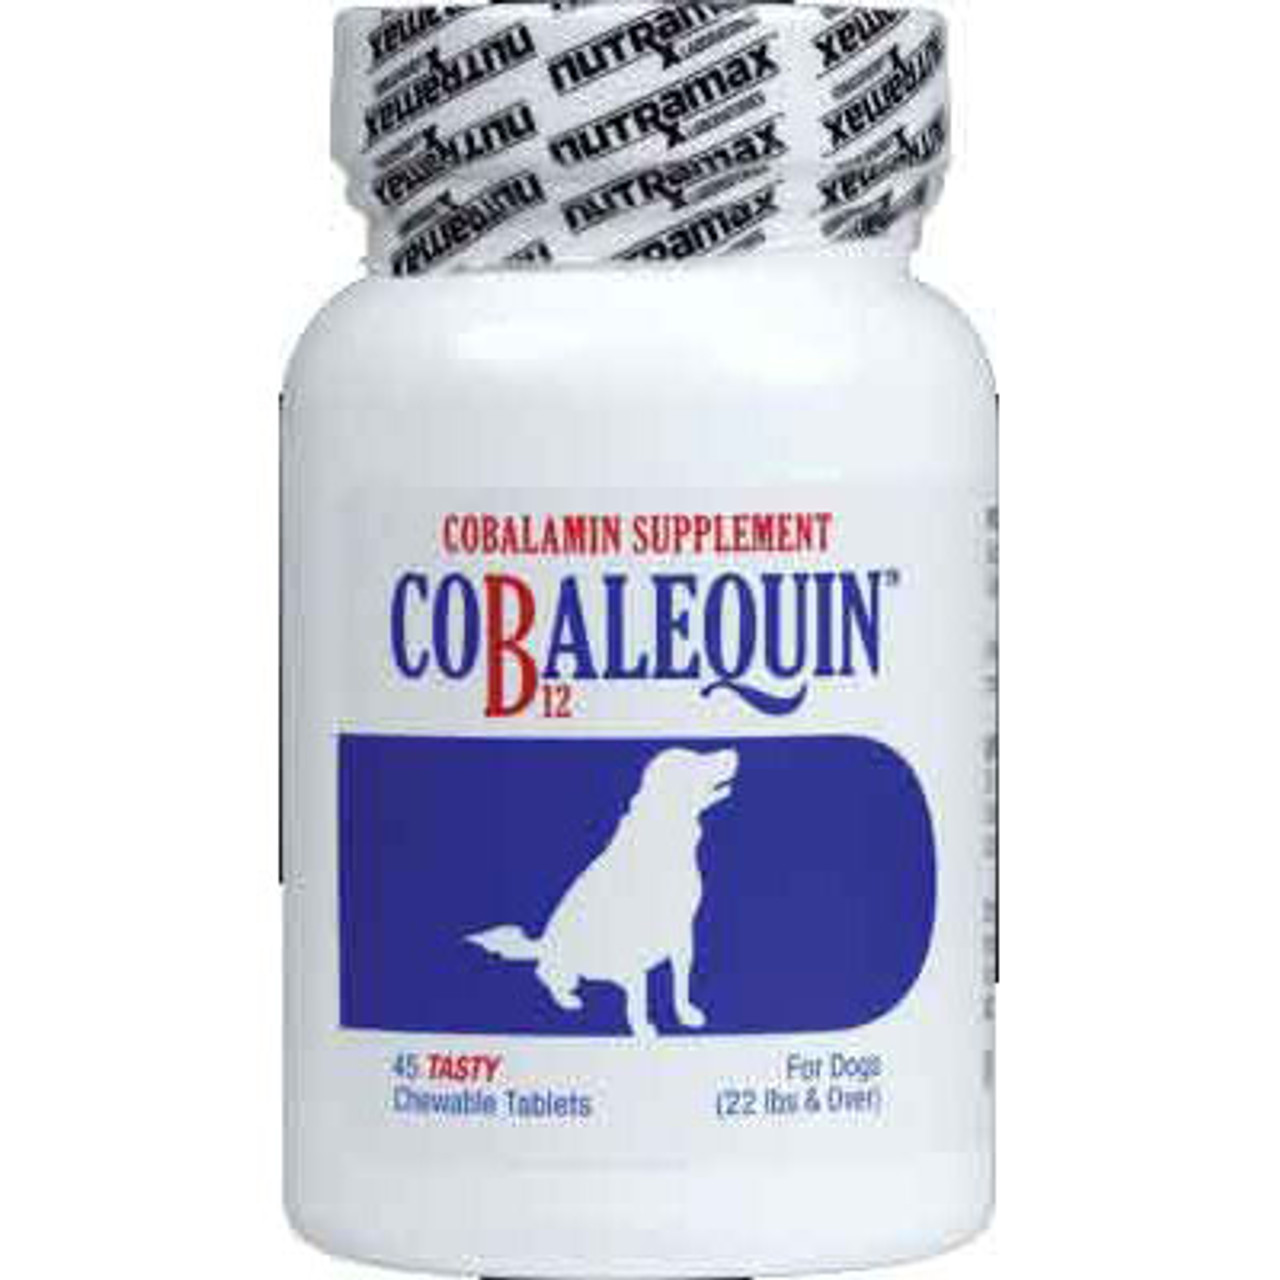 Cobalequin Chewable Tablets for Dogs (Medium & Large)